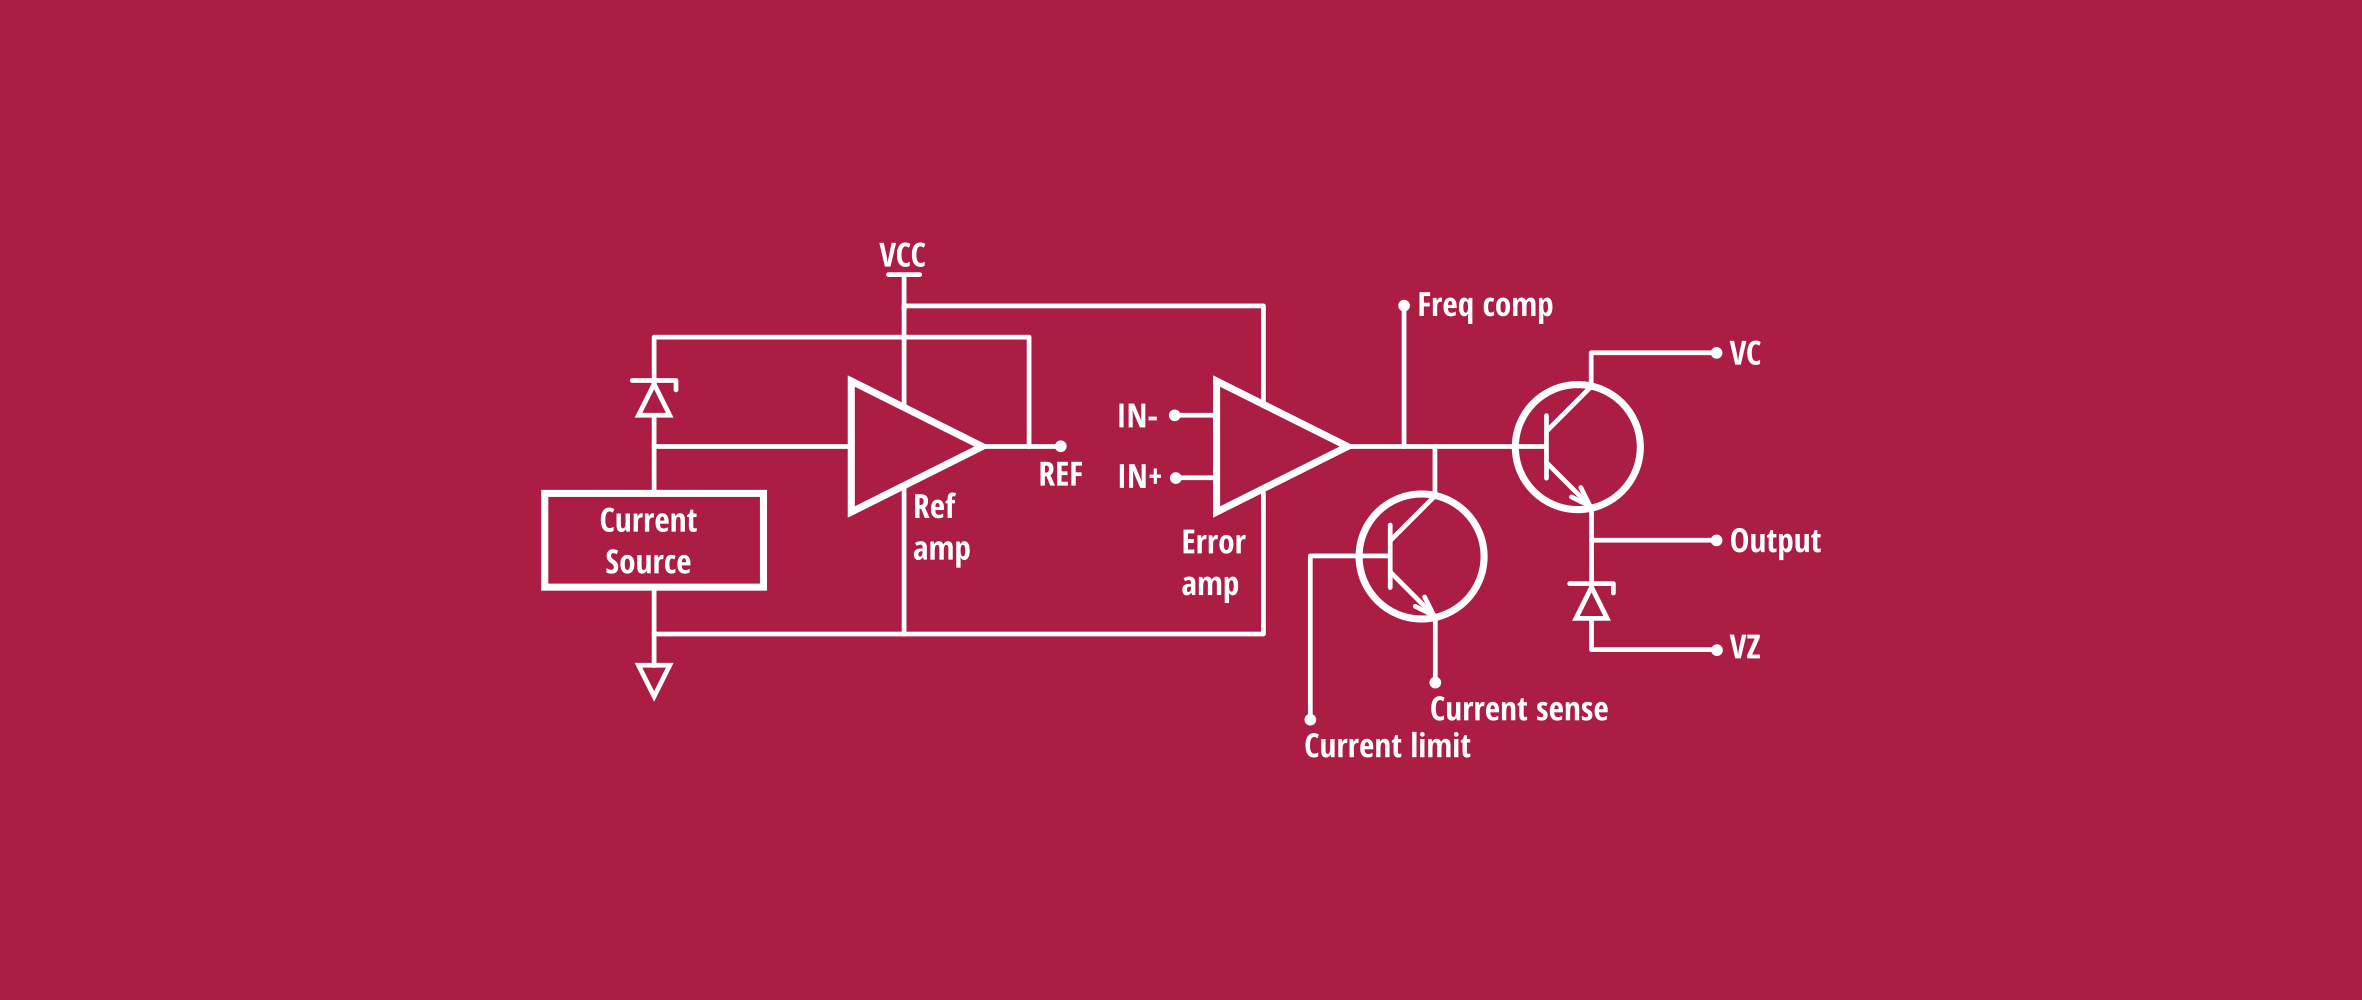 The functional diagram of the 723 from the datasheet